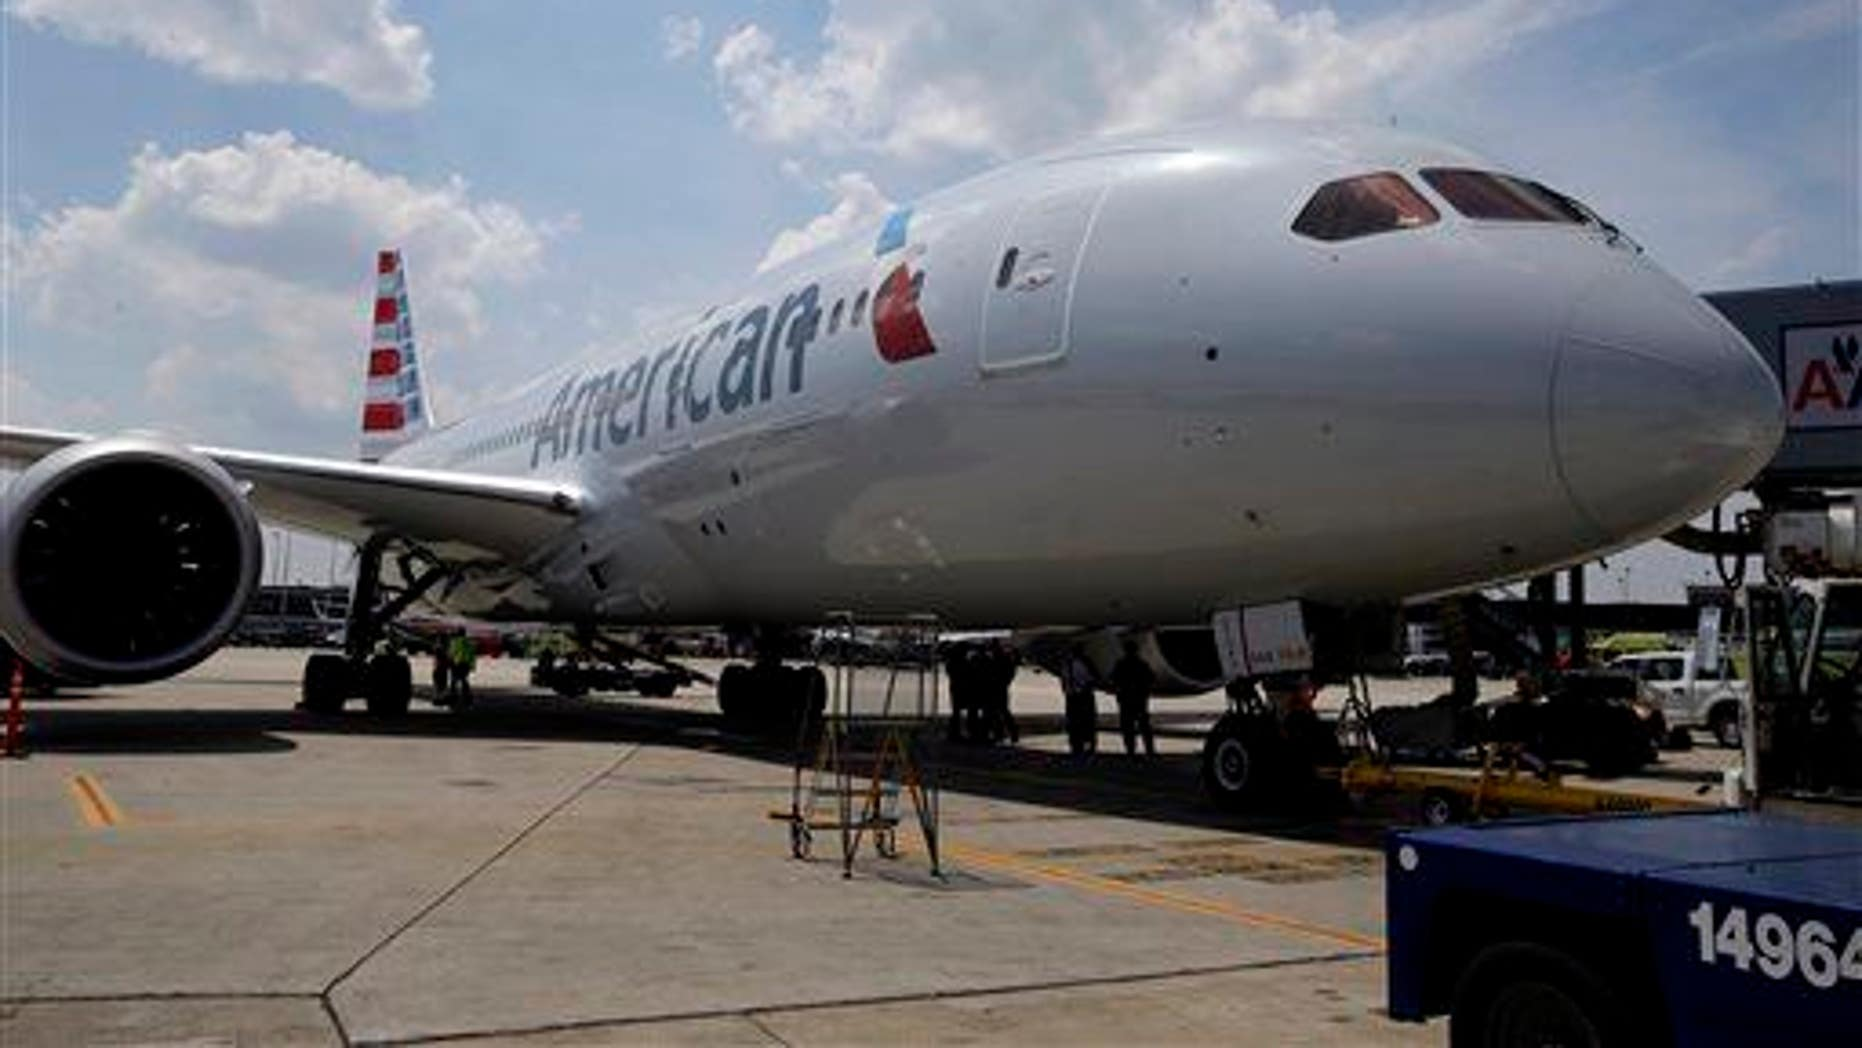 Recent reports pointed to concerns over the Boeing 787 that could be tied to the number 2,147,483,647.